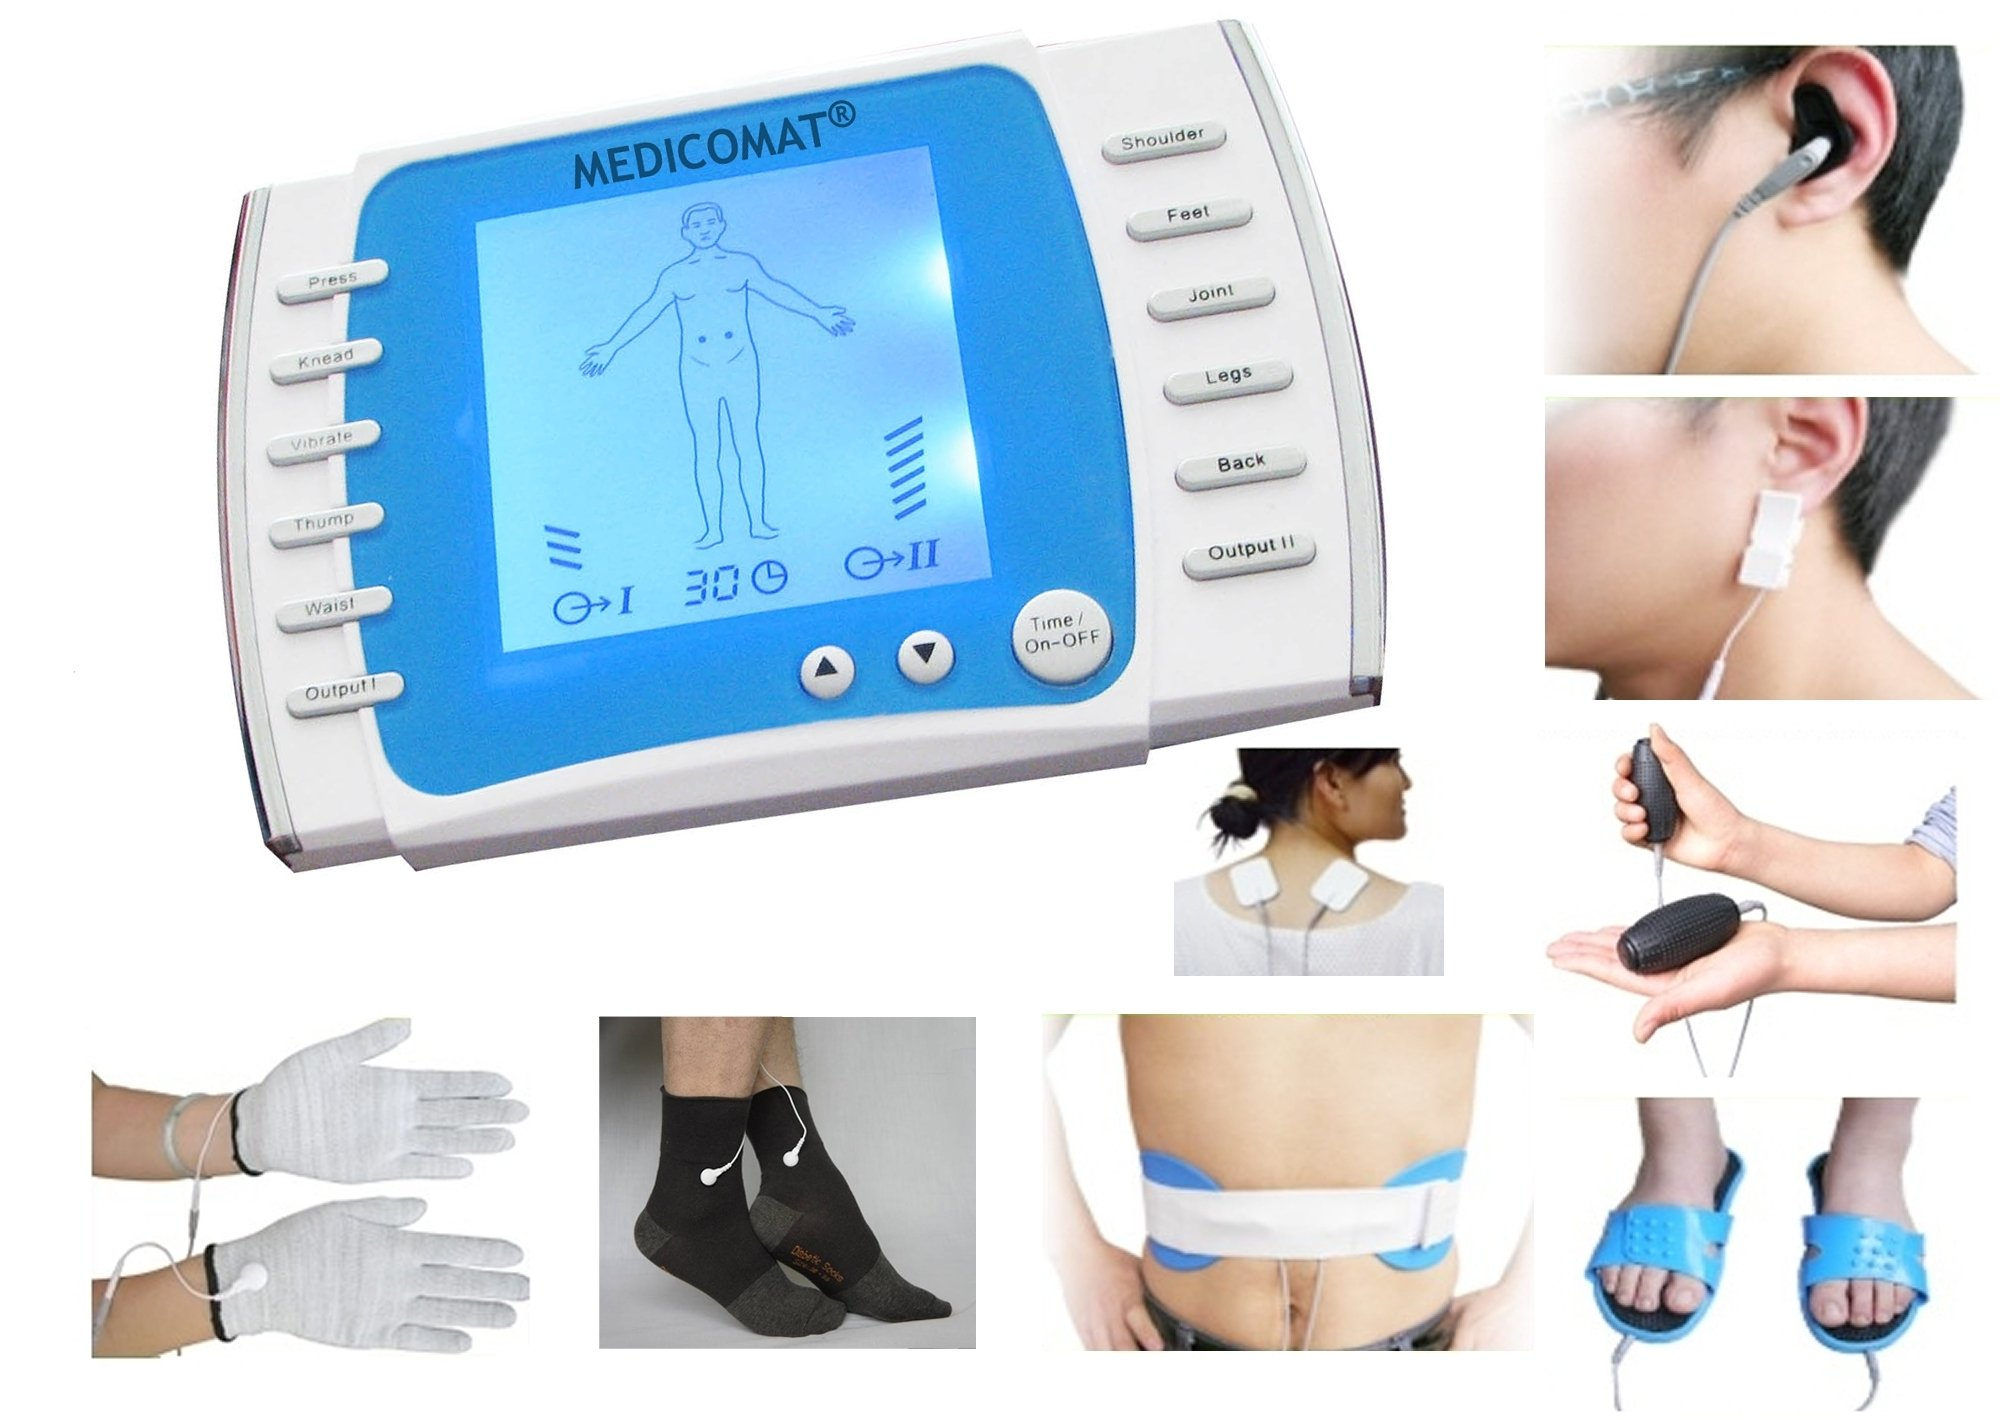 Ear Acupuncture for Weight Loss Medicomat Acupuncture